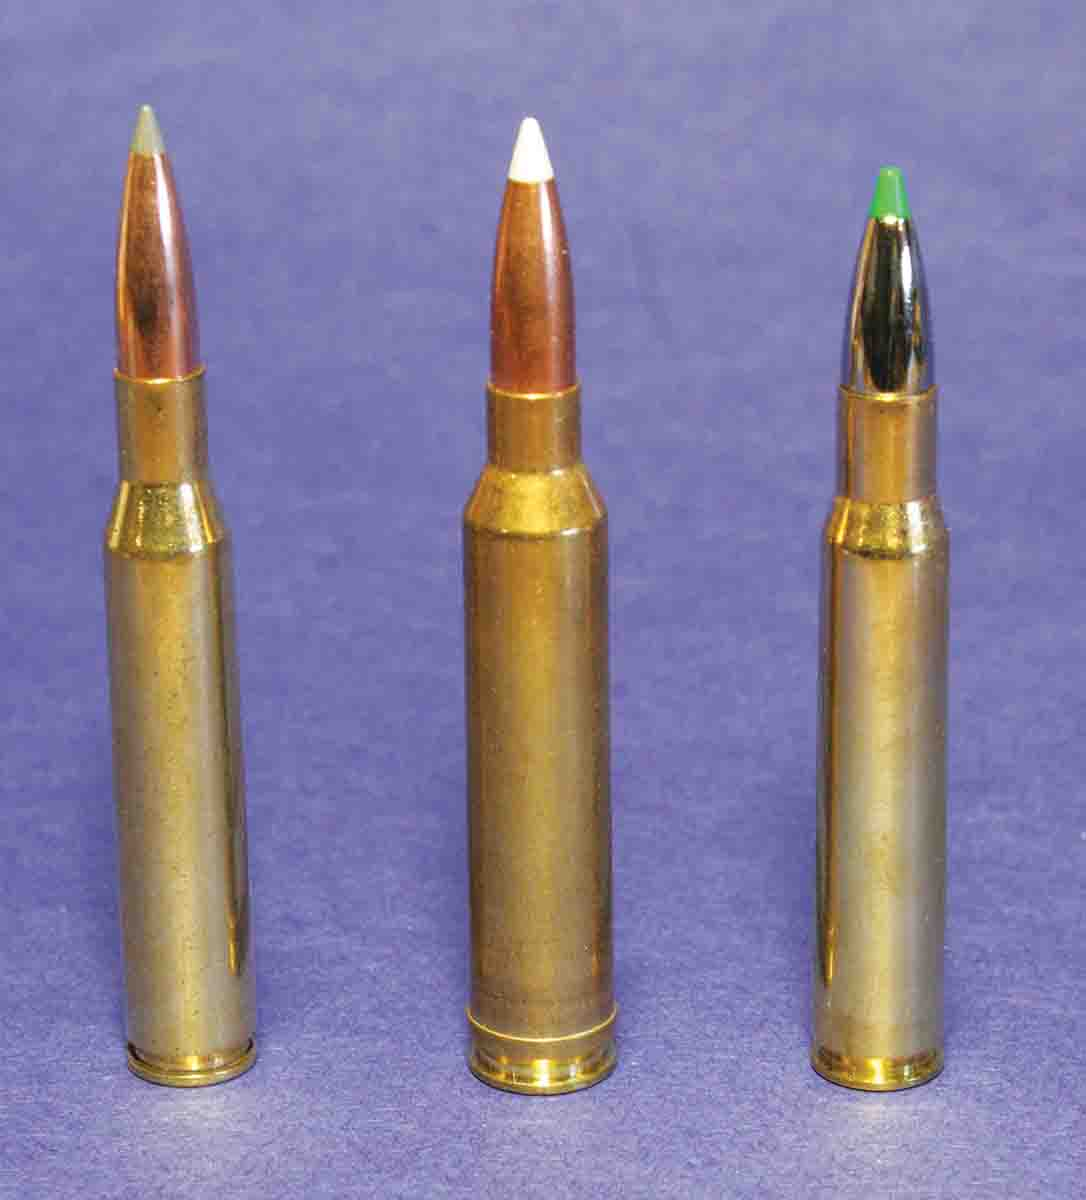 Remington promoted its new 7mm Remington Magnum (center) as outperforming both the popular .270 Winchester (left) with 150-grain bullets and the .30-06 (right) with 180-grain bullets – with recoil resembling the .30-06.